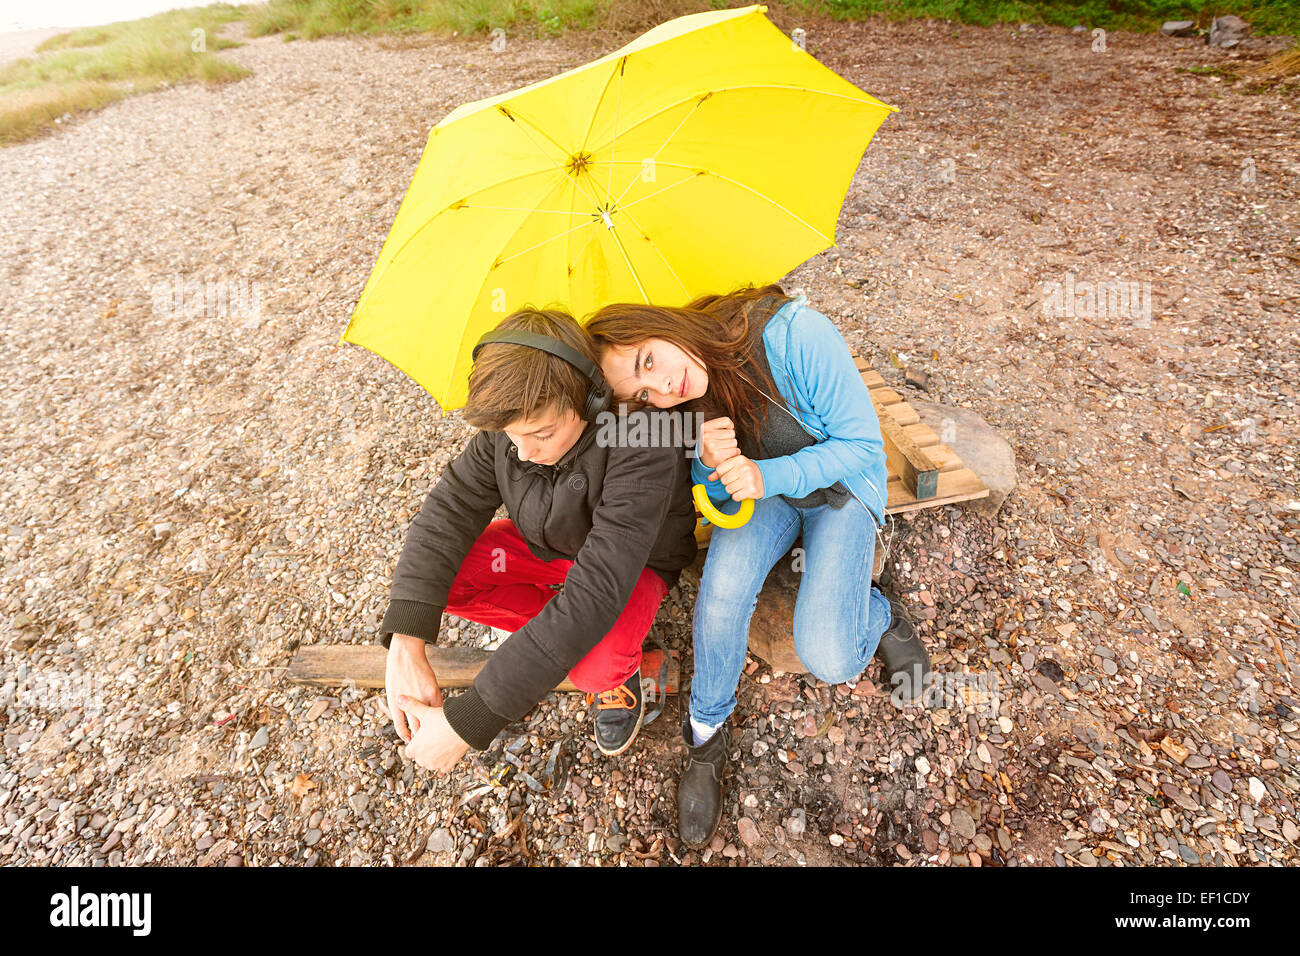 brother and sister with yellow umbrella sitting on a dirty beach Stock Photo